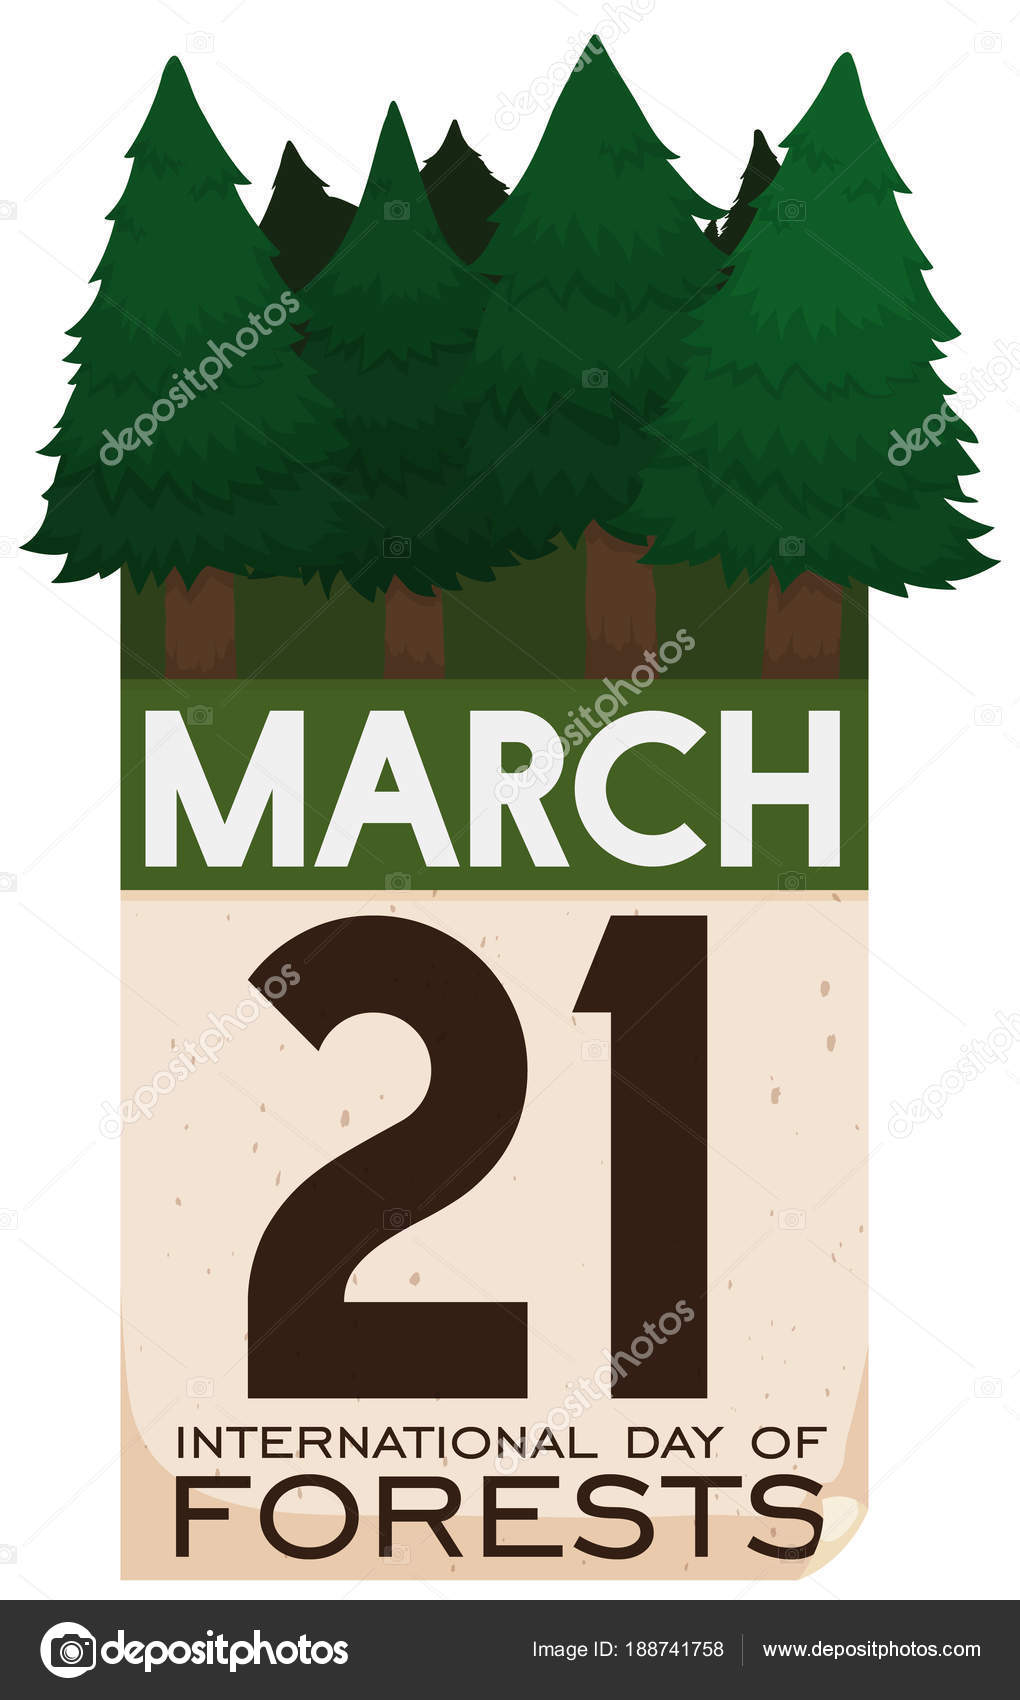 Loose-leaf Calendar and Pine Trees for International Day of